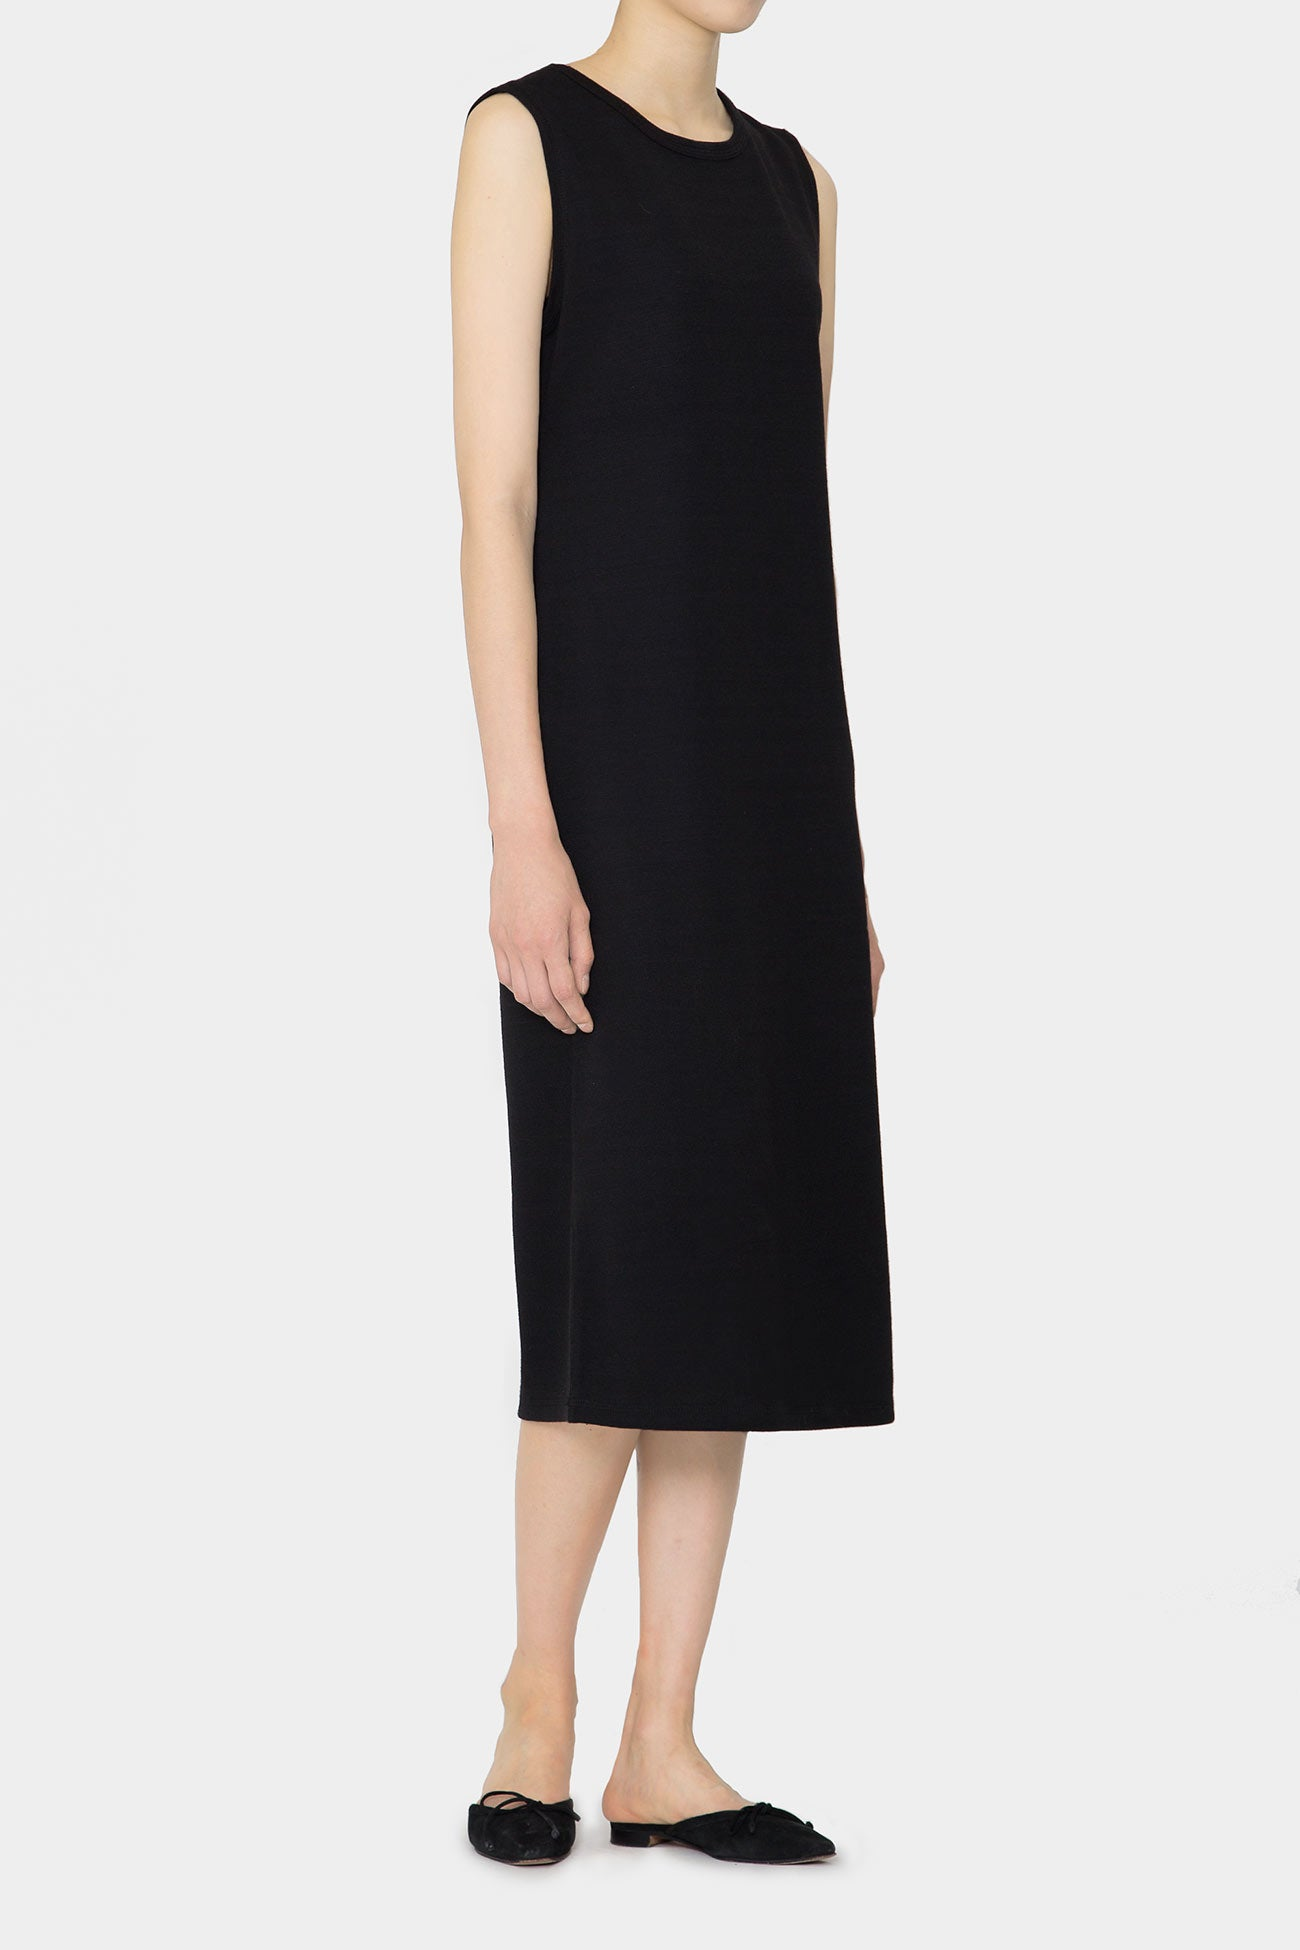 BLACK BREE DAY LONG DRESS